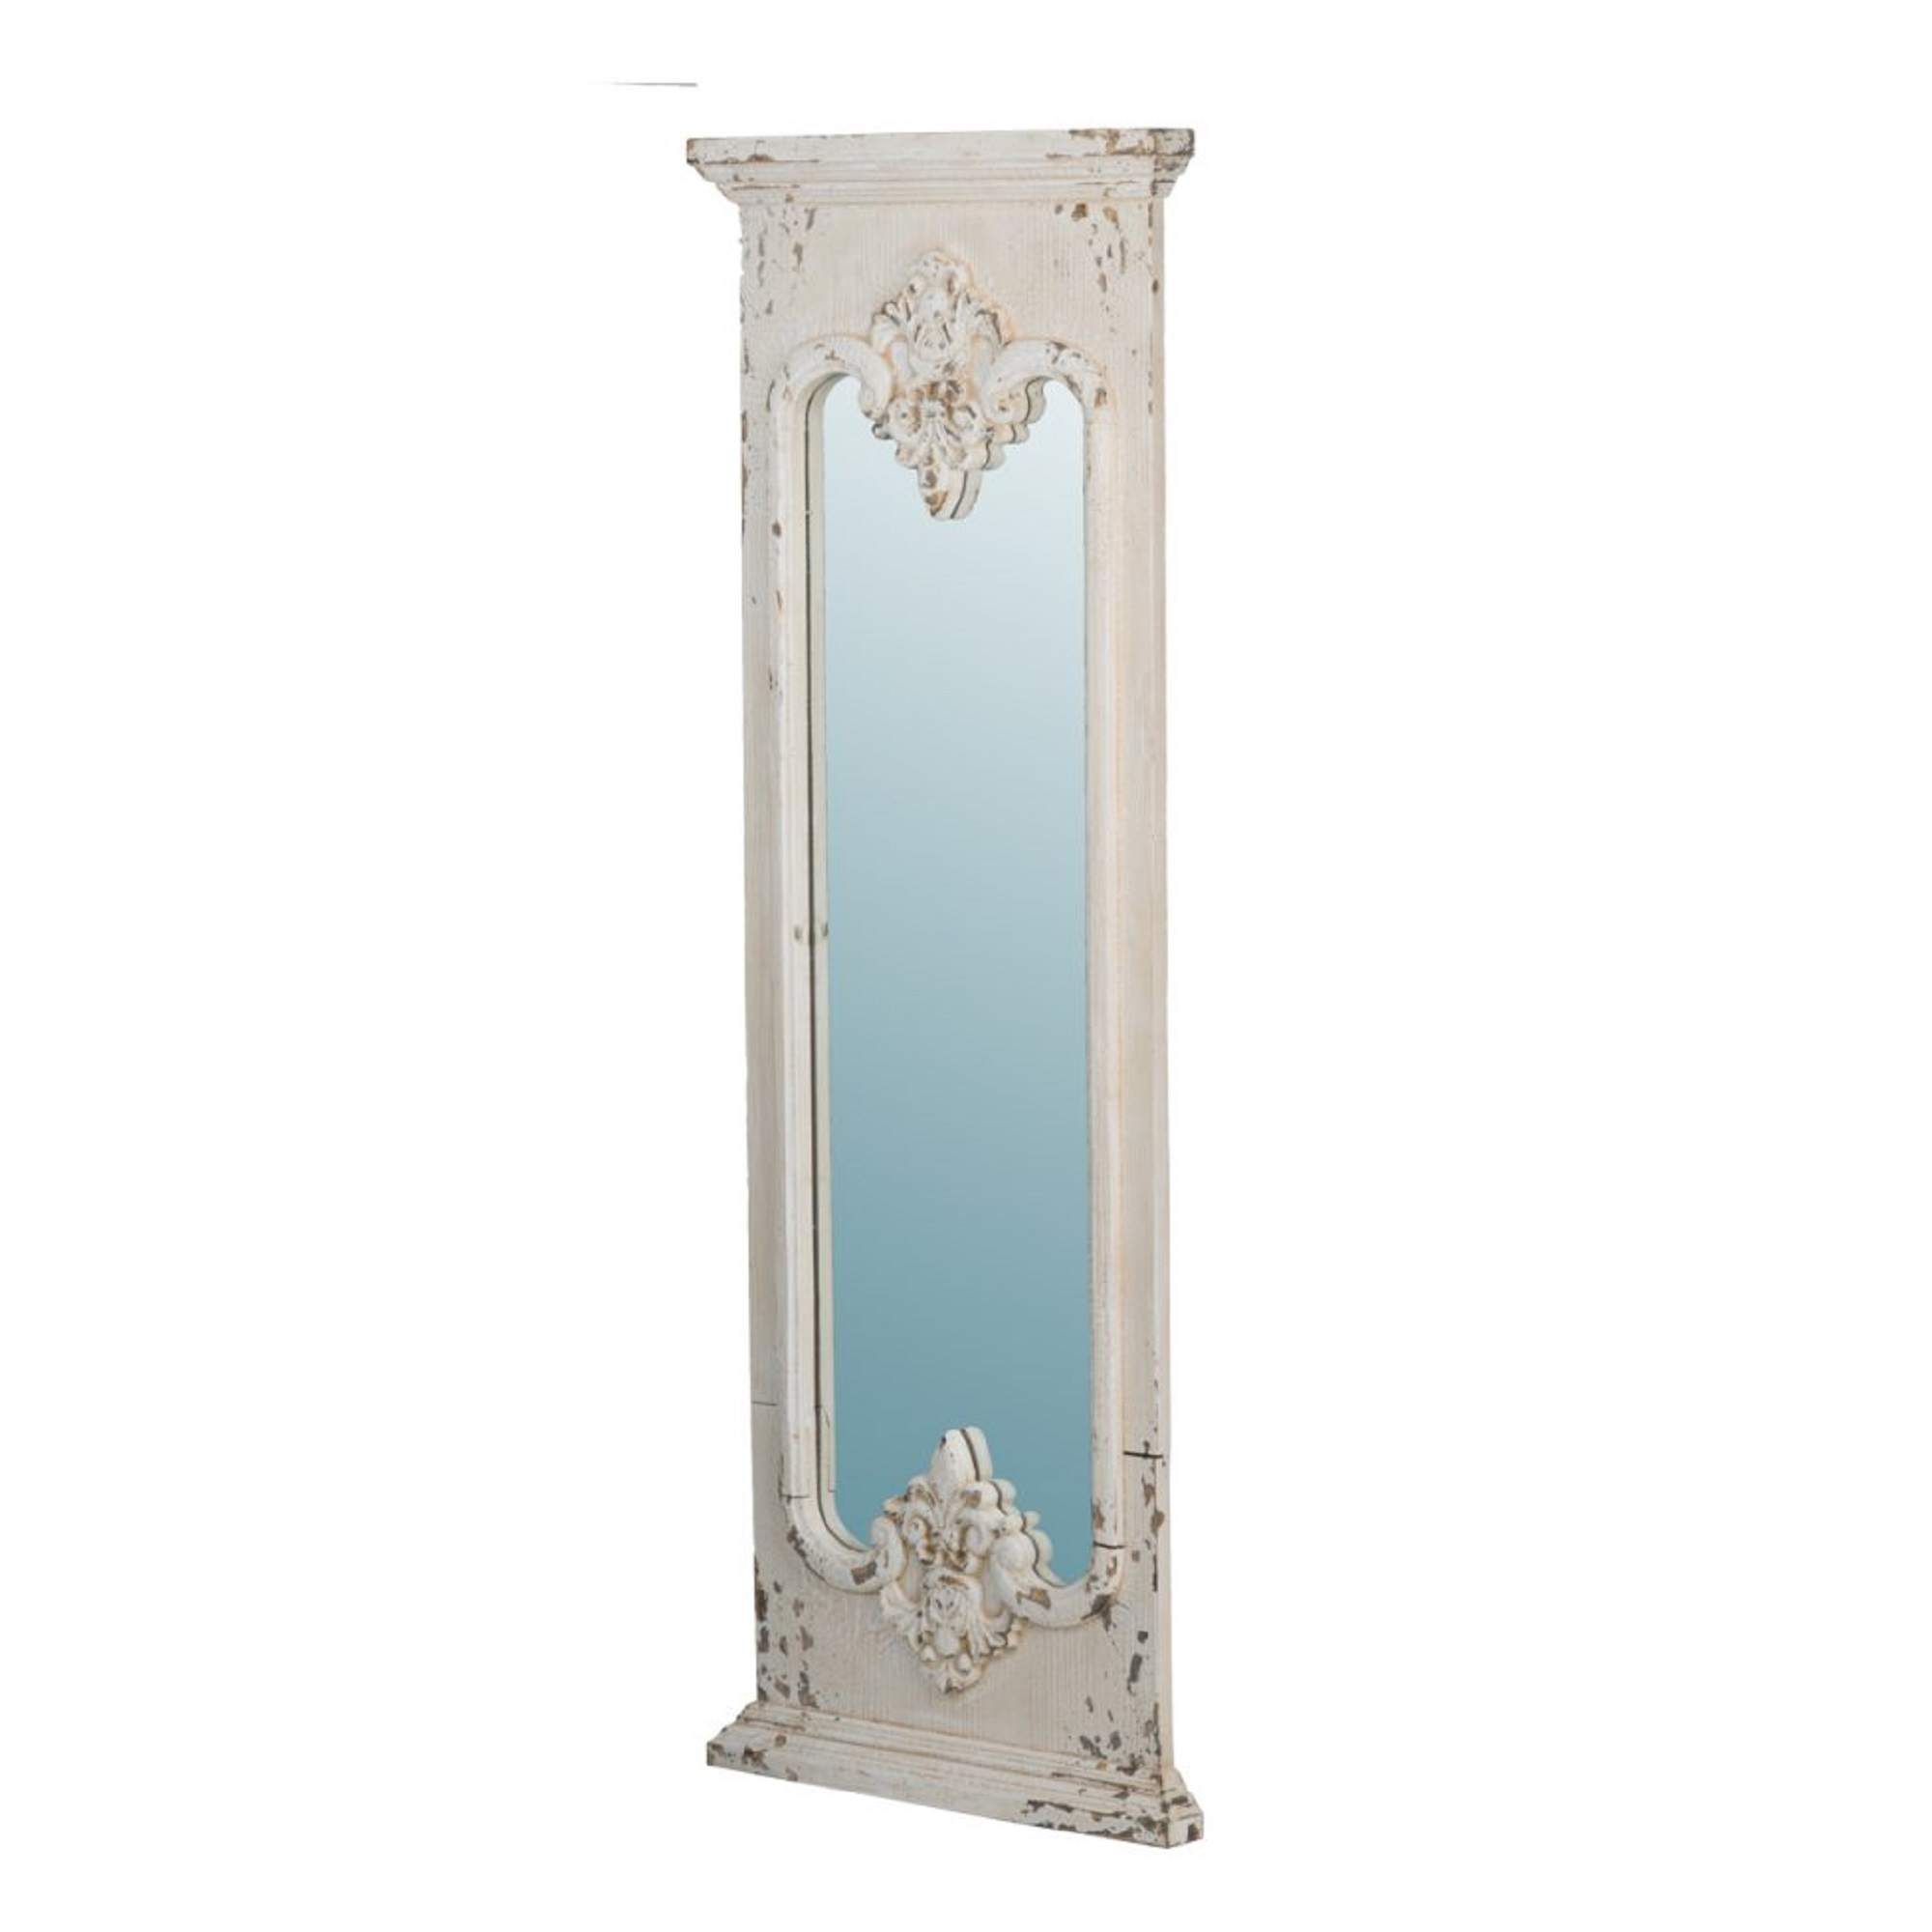 59 White Distressed Classic Vintage Style Wood Framed Rectangular Floor Mirror Walmart Com Walmart Com